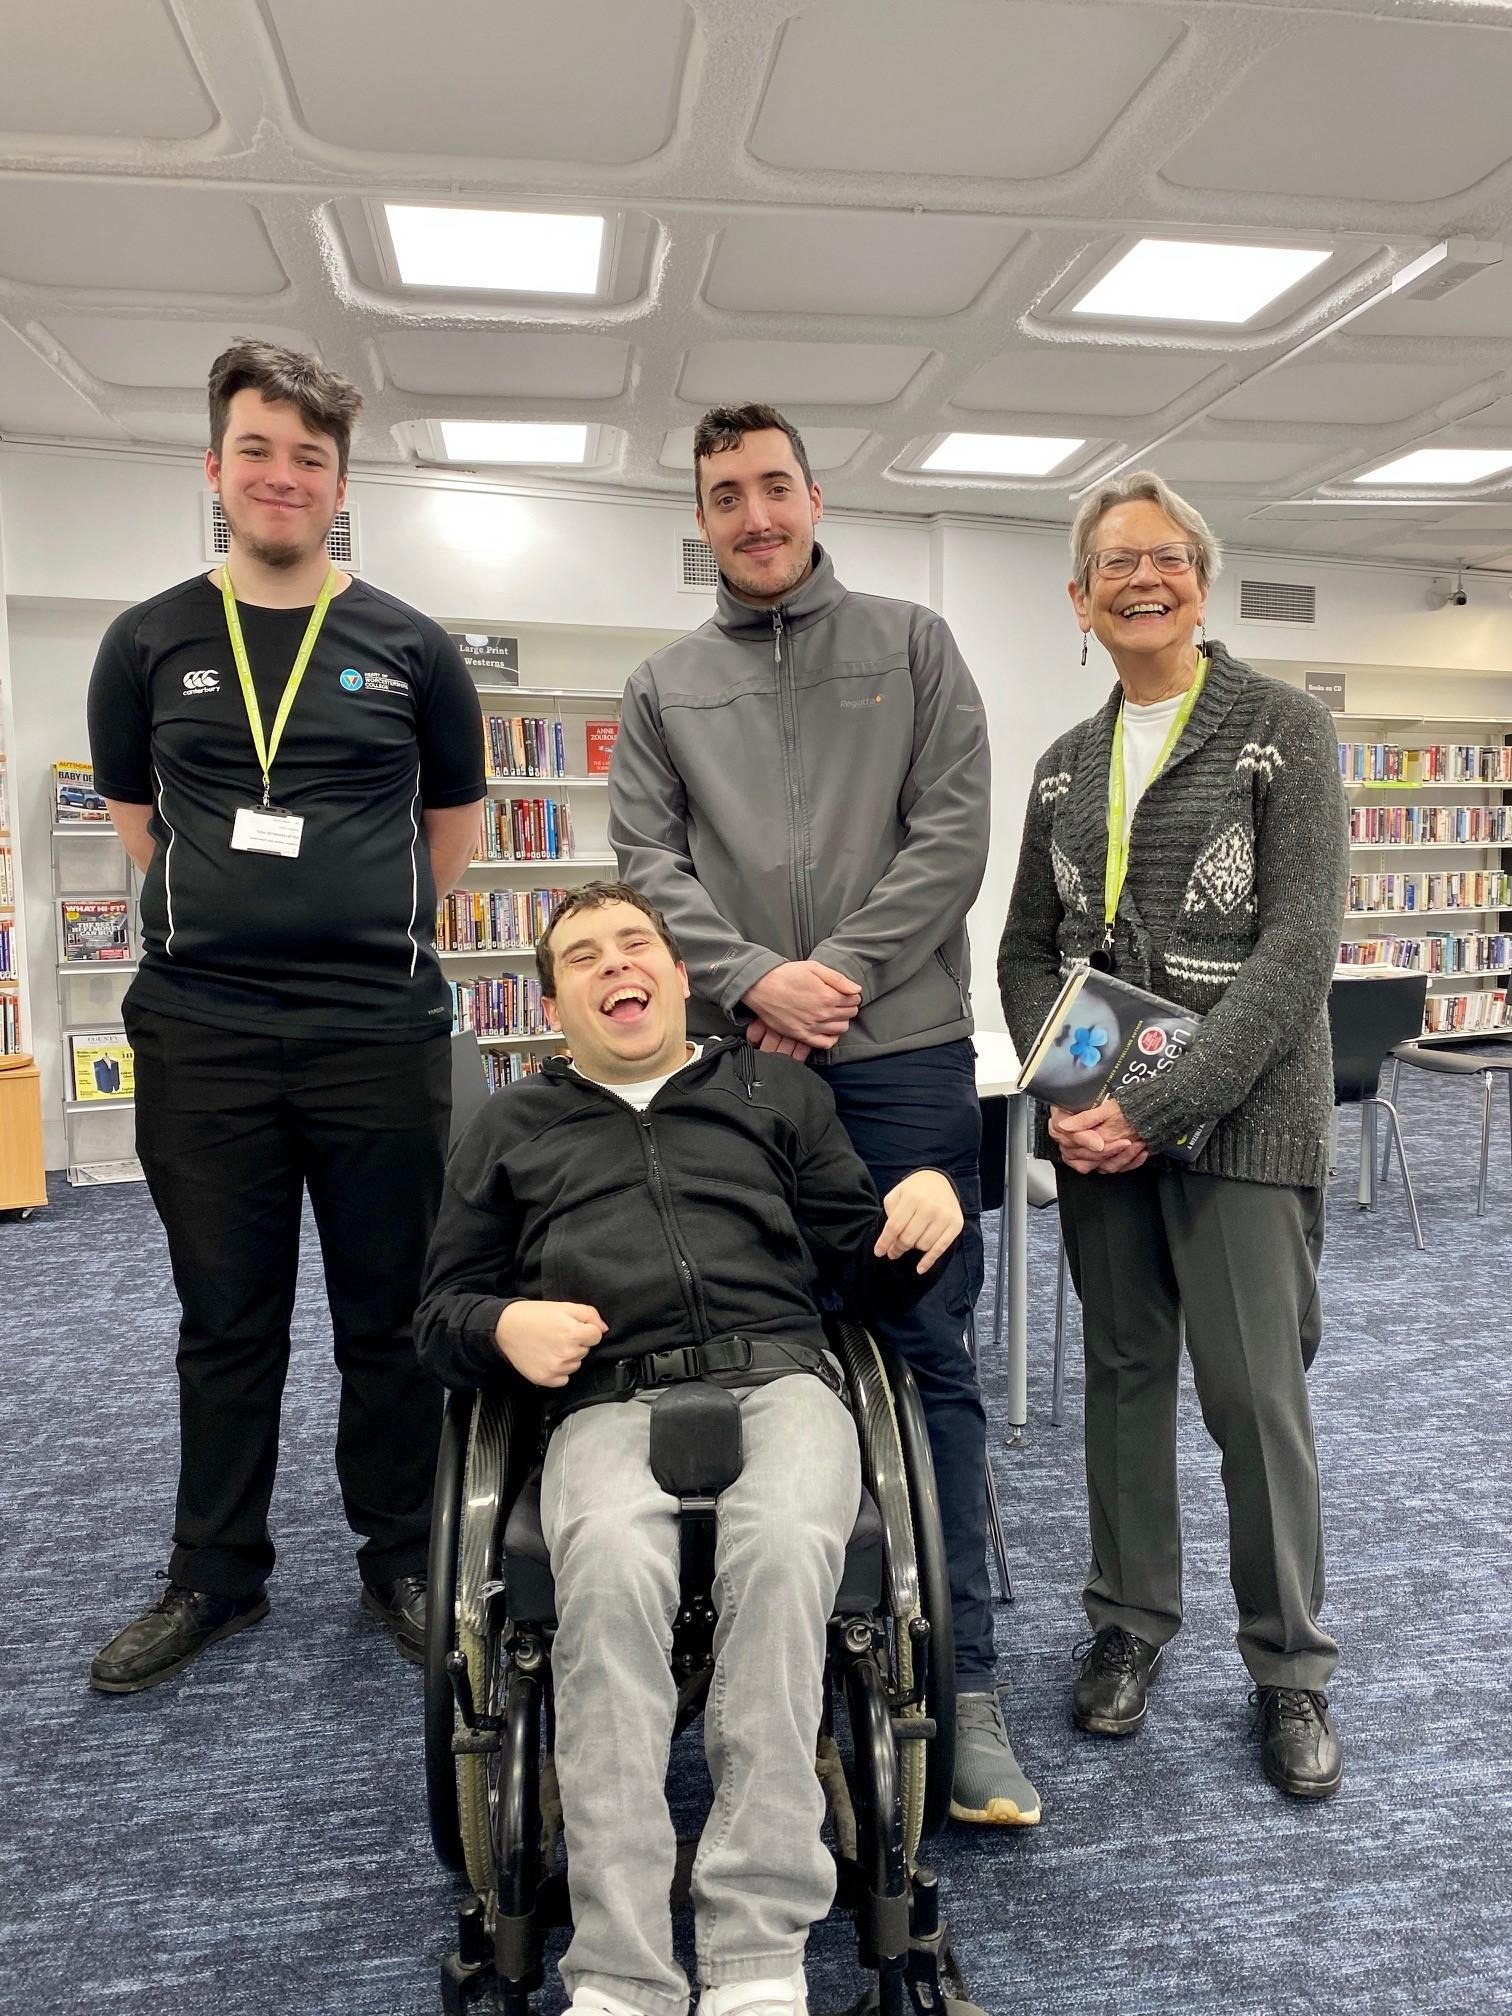 Volunteers pose at Redditch Library for Volunteers Day 2019